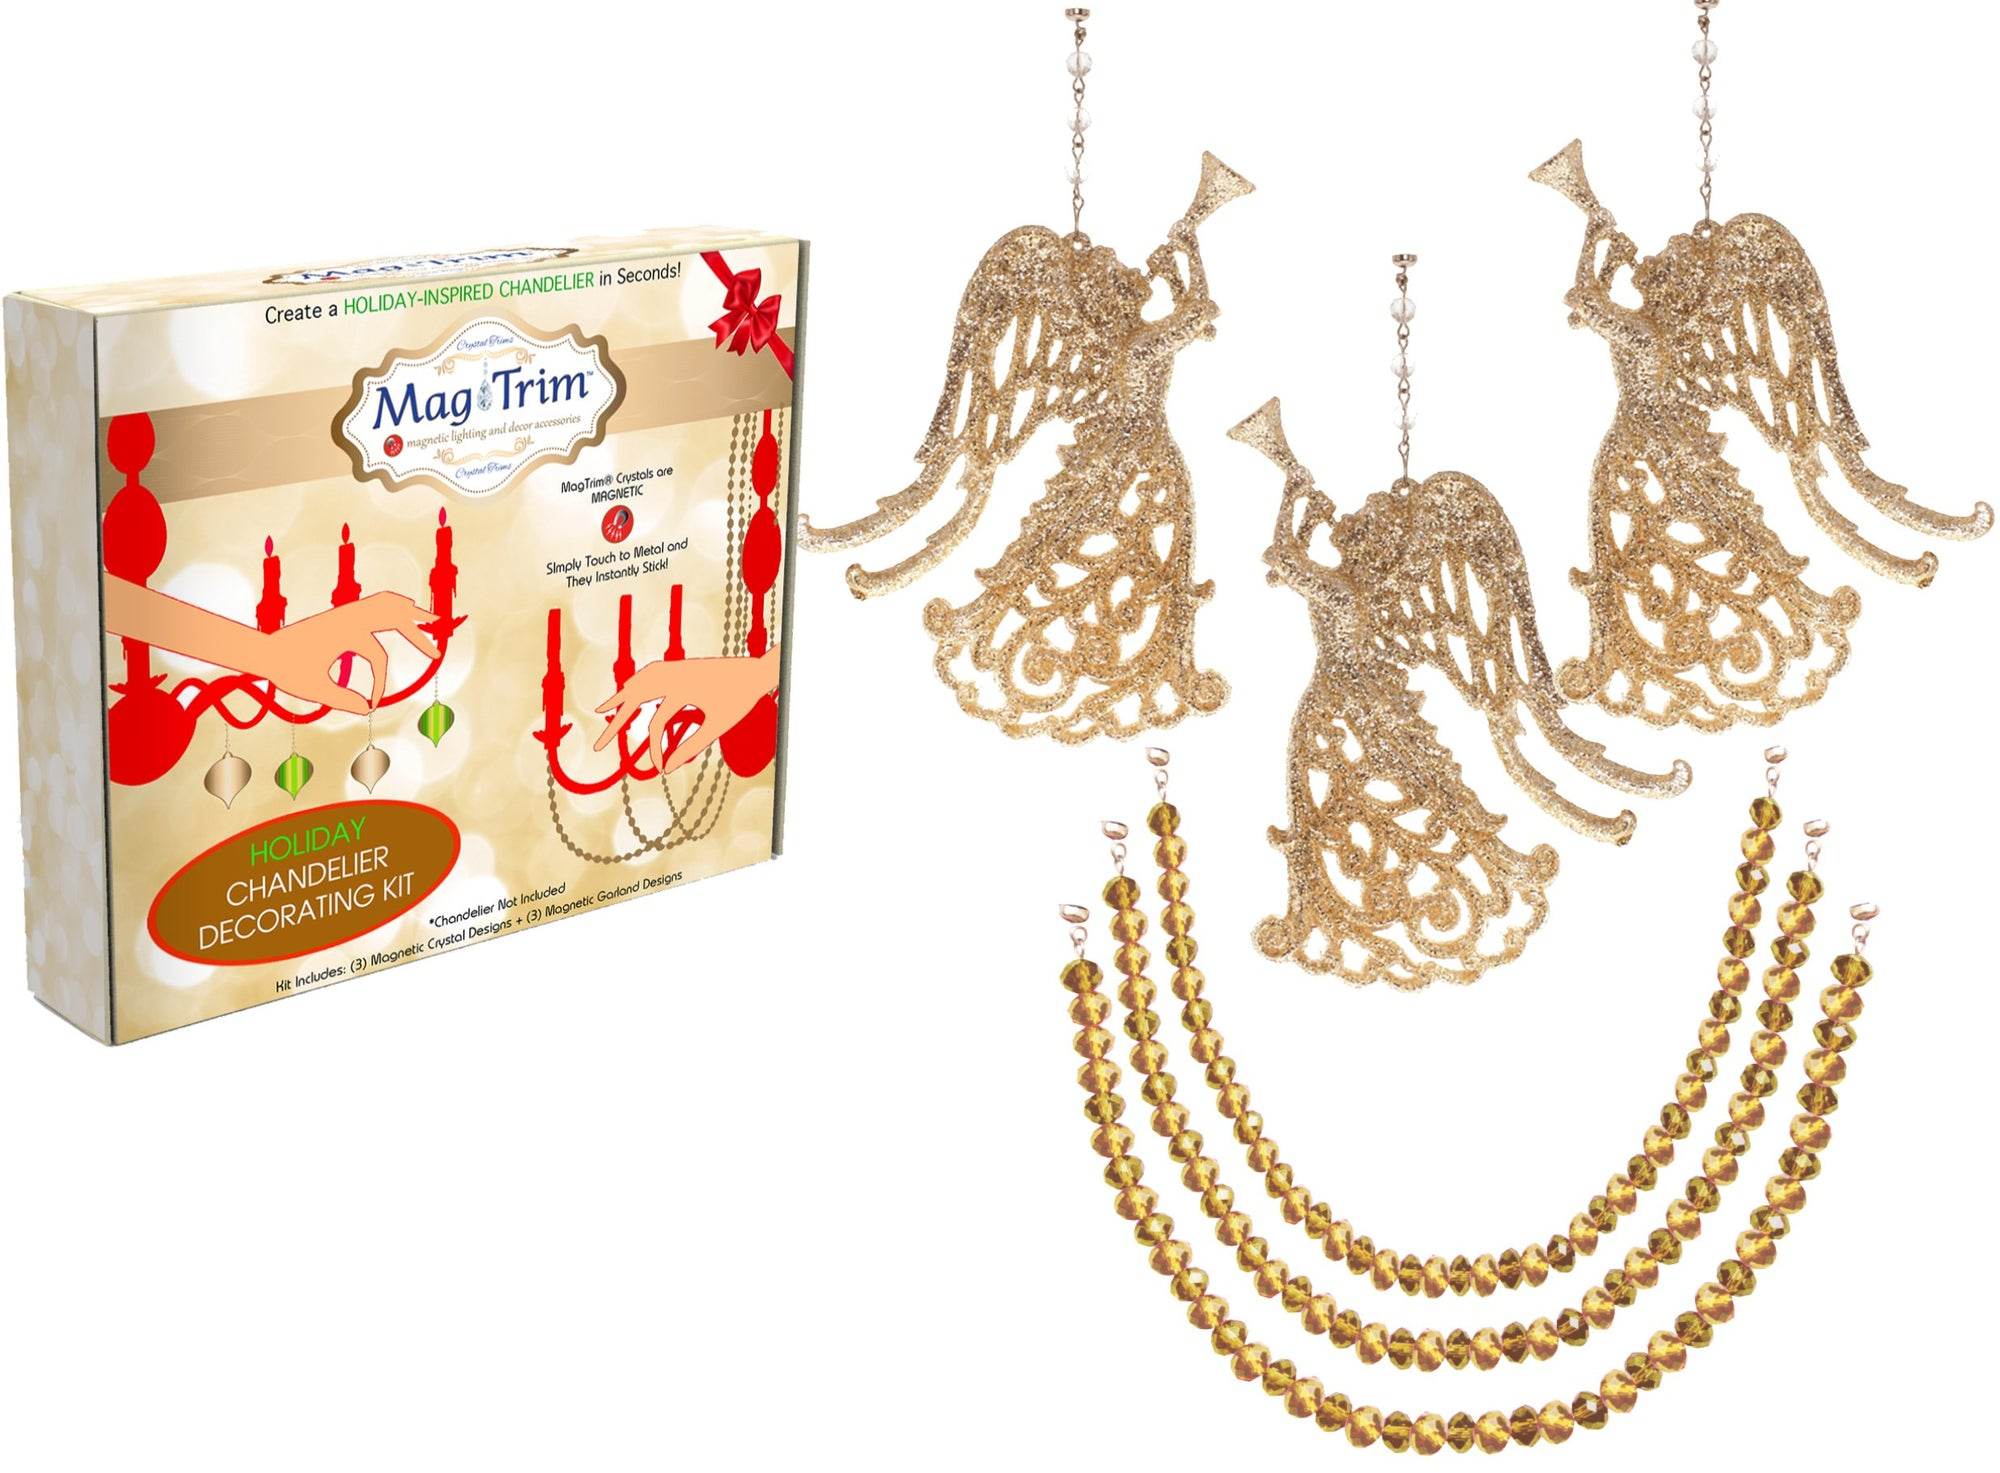 "HOLIDAY CHANDELIER MAKEOVER KIT - Gold Angel + 12"" Gold Garland (Set/6) Chandelier Crystals 